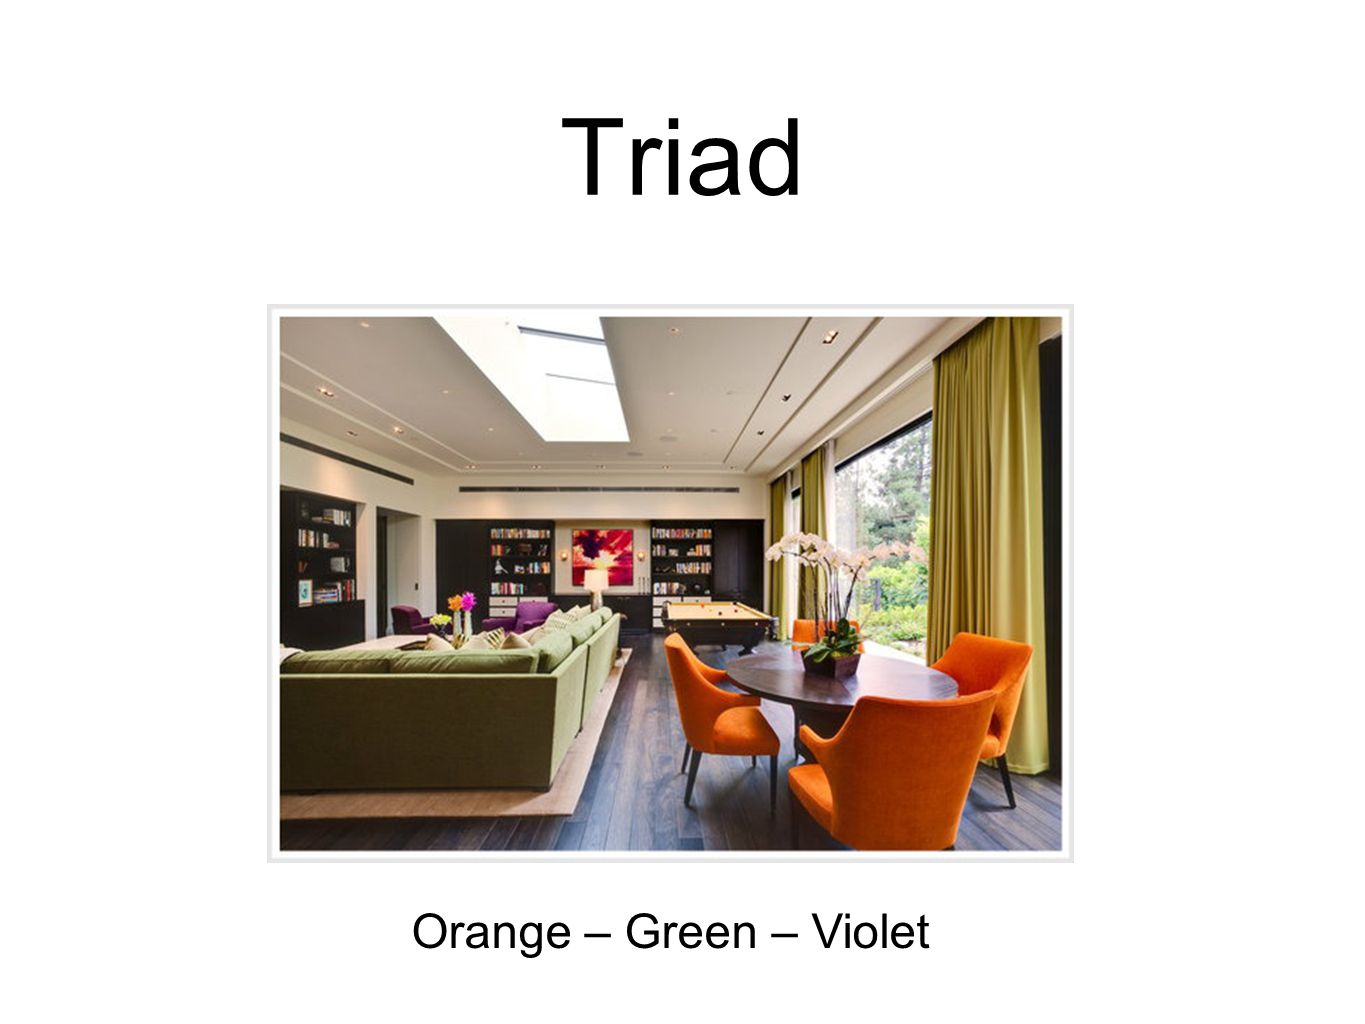 Tetrad  Any four hues equidistant from each other on the color wheel  These schemes can lead to rich, yet unified interiors.